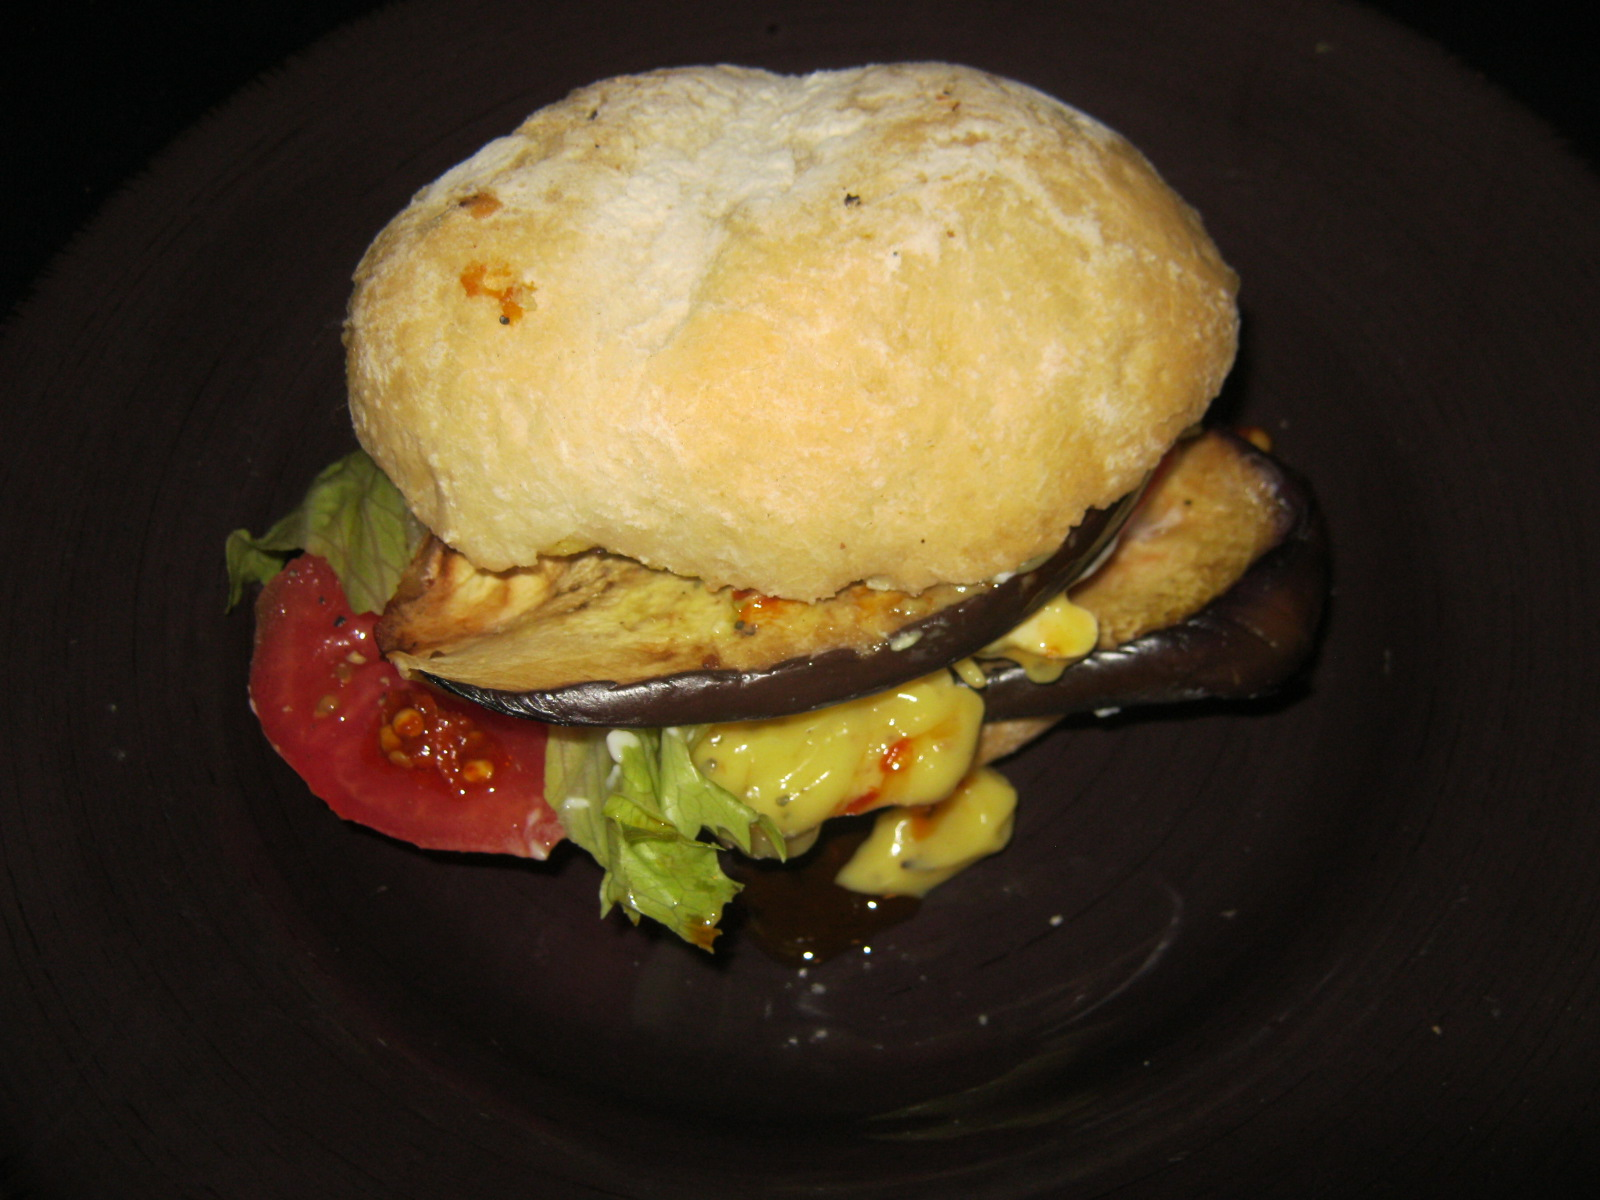 Bringel Tomato Avocado burger with garlic, lettuce and chillinaise yoghurt dressing